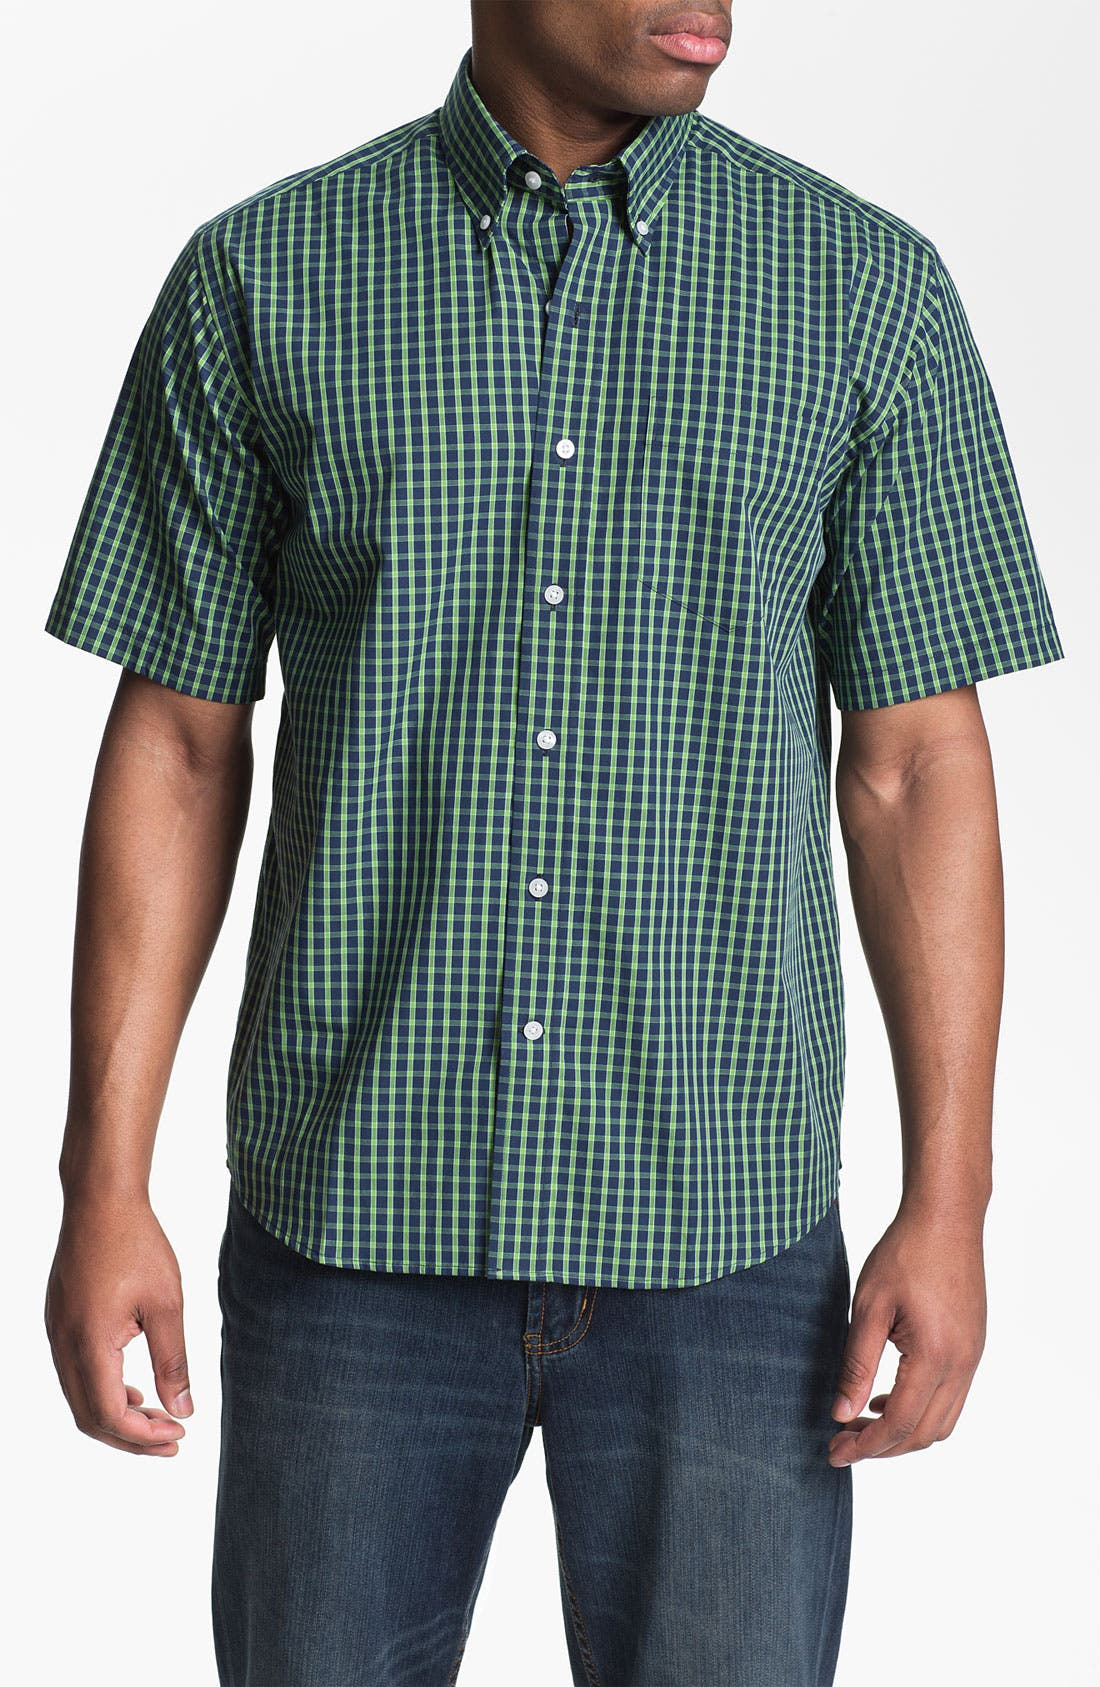 Main Image - Cutter & Buck 'Anders' Check Sport Shirt (Big & Tall)